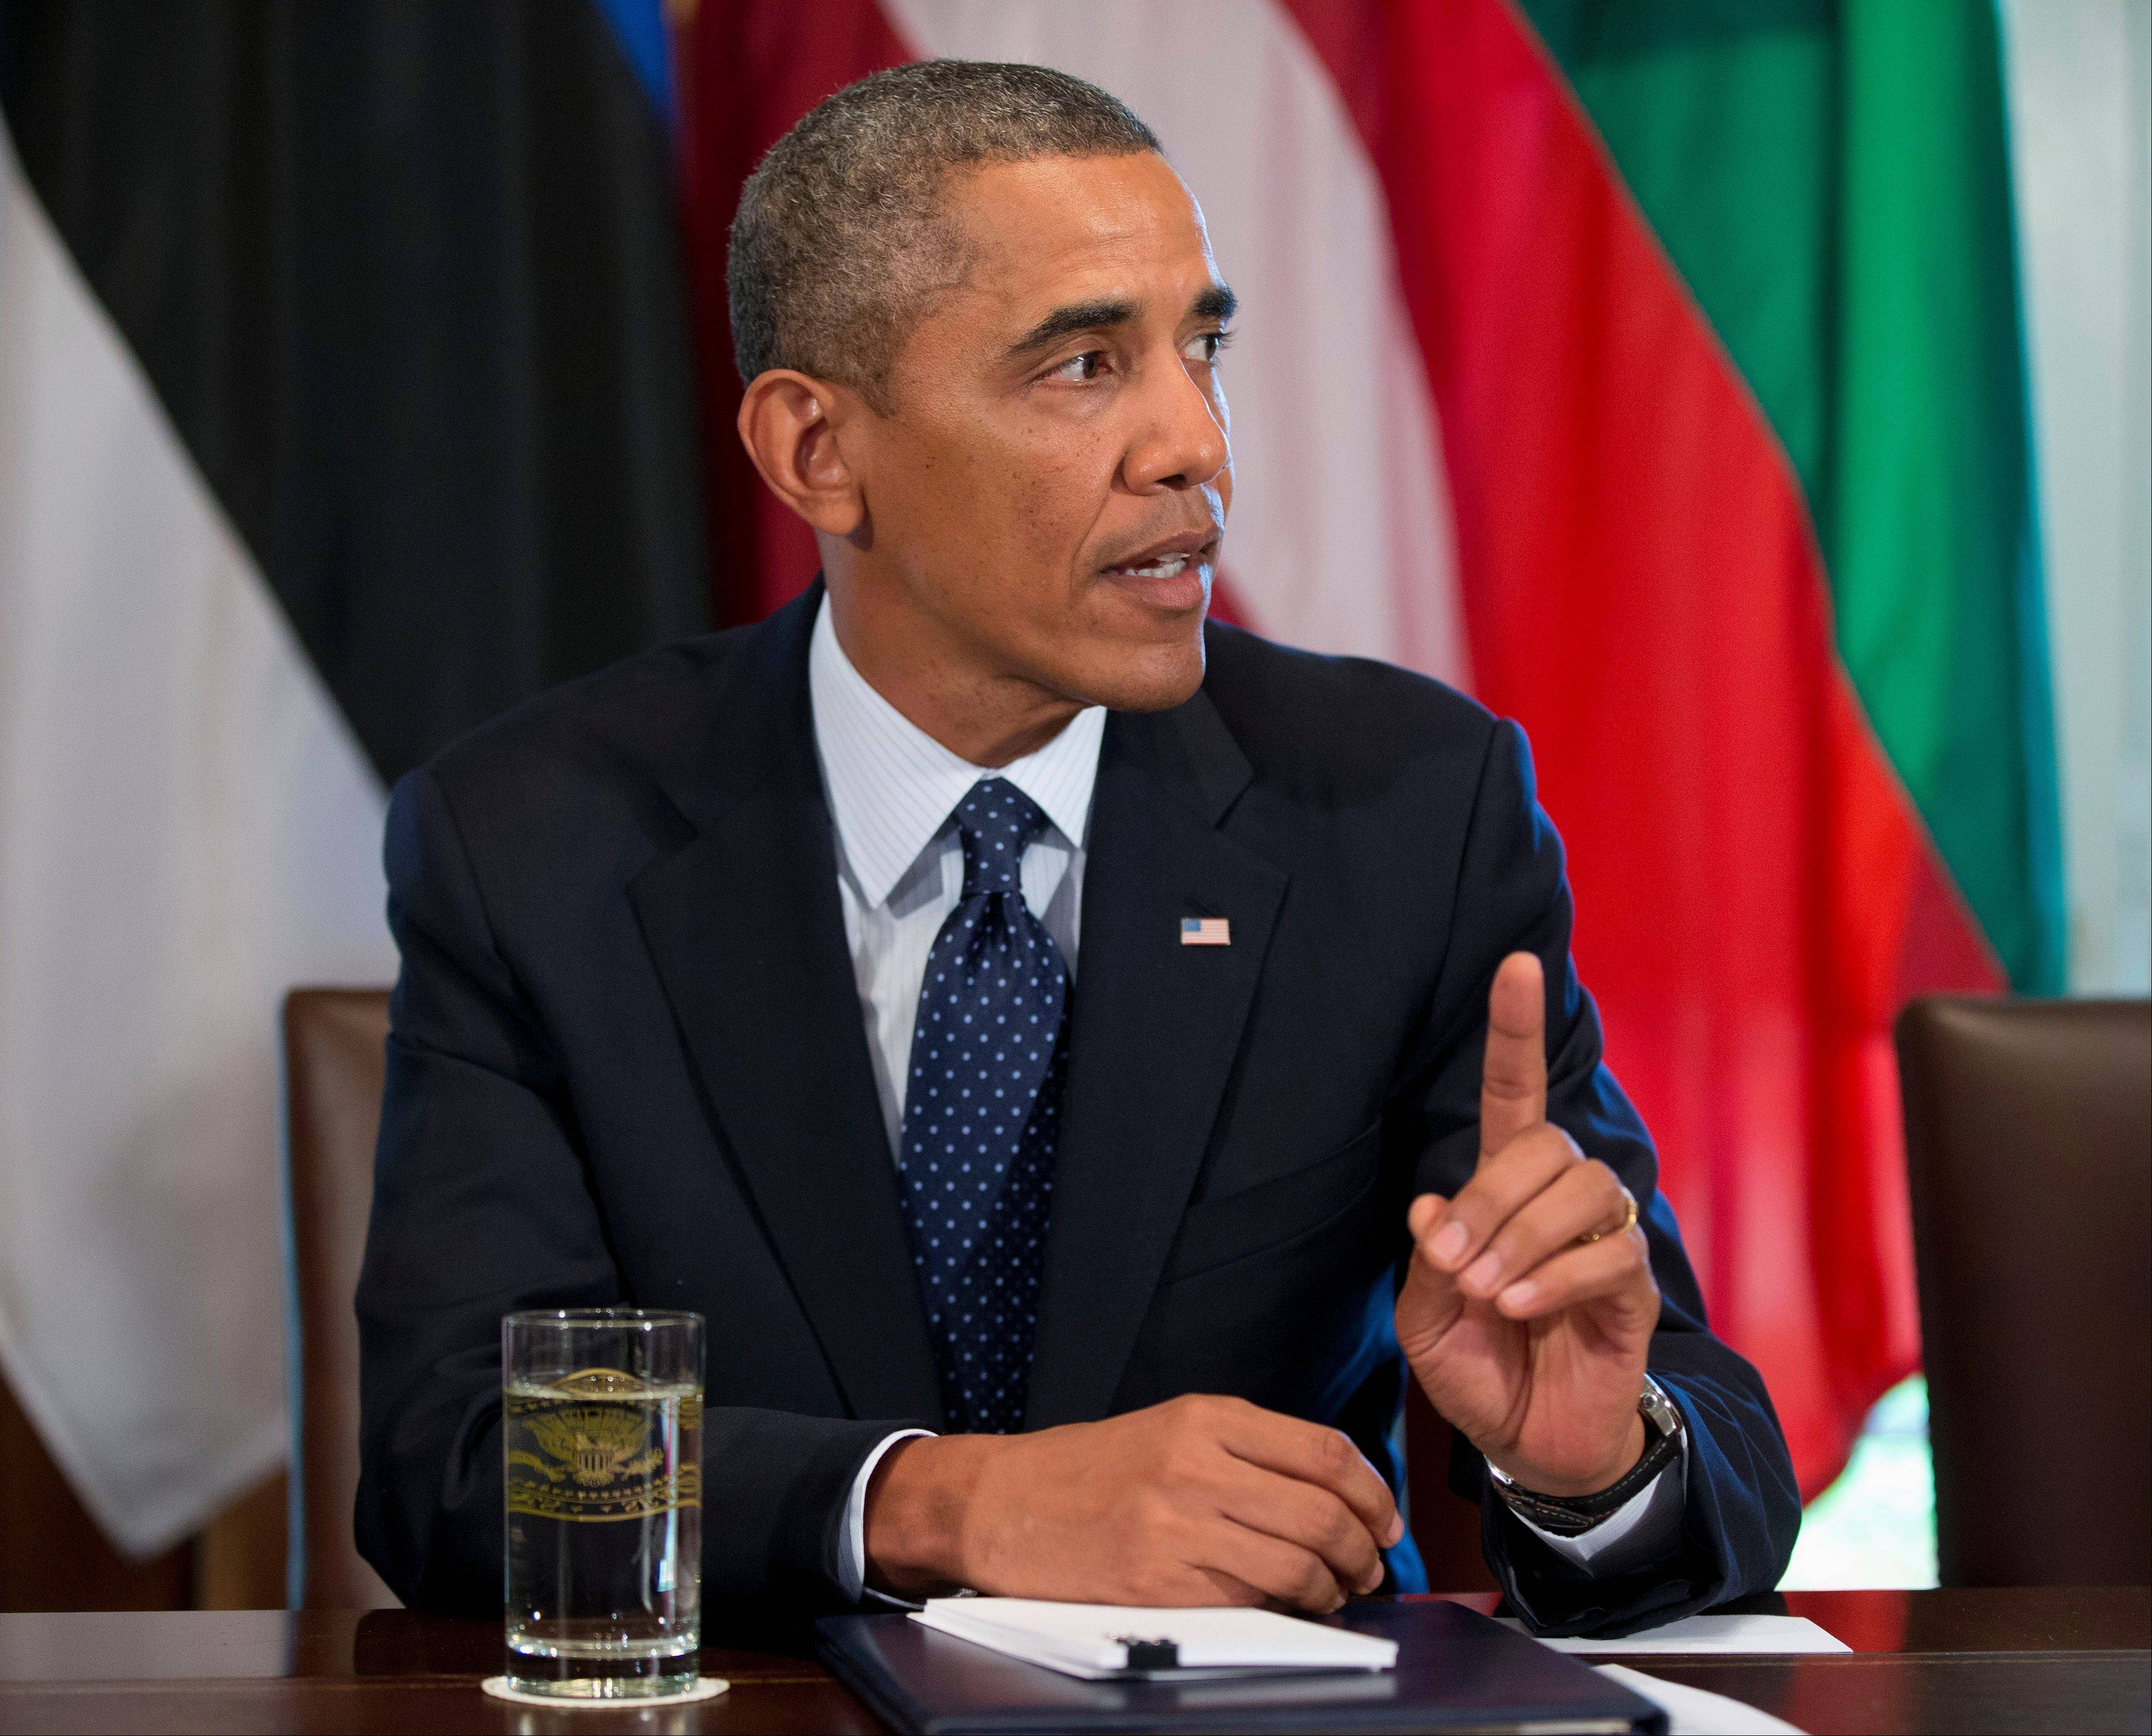 Obama tries persuading the skeptical on Syria